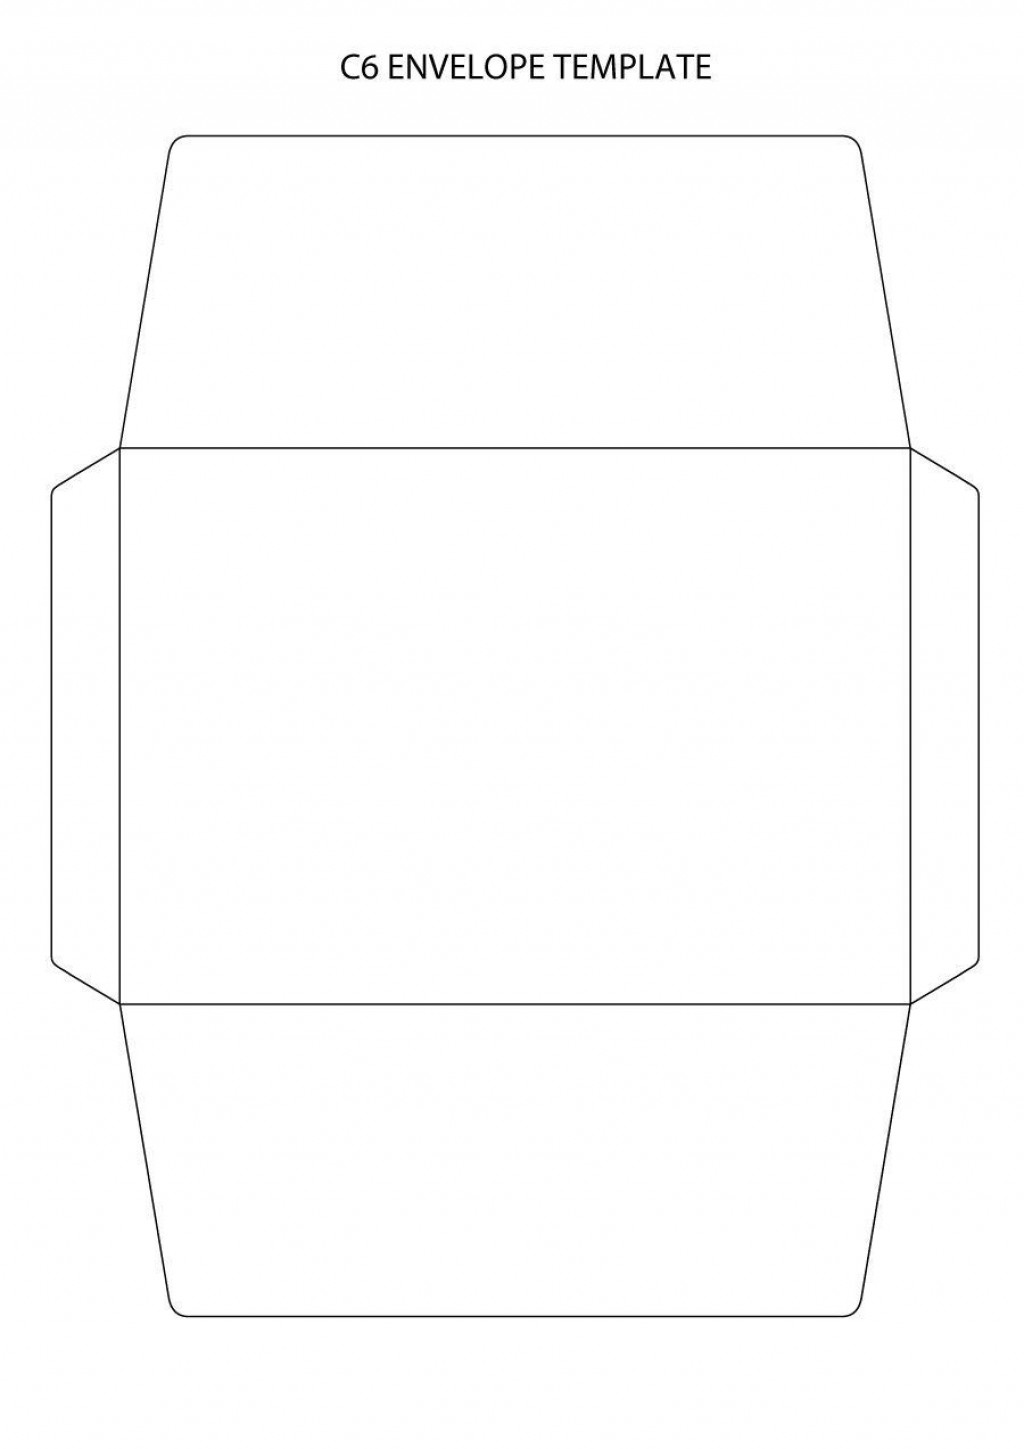 002 Awesome 5x7 Envelope Template Word High Def  Microsoft FreeLarge